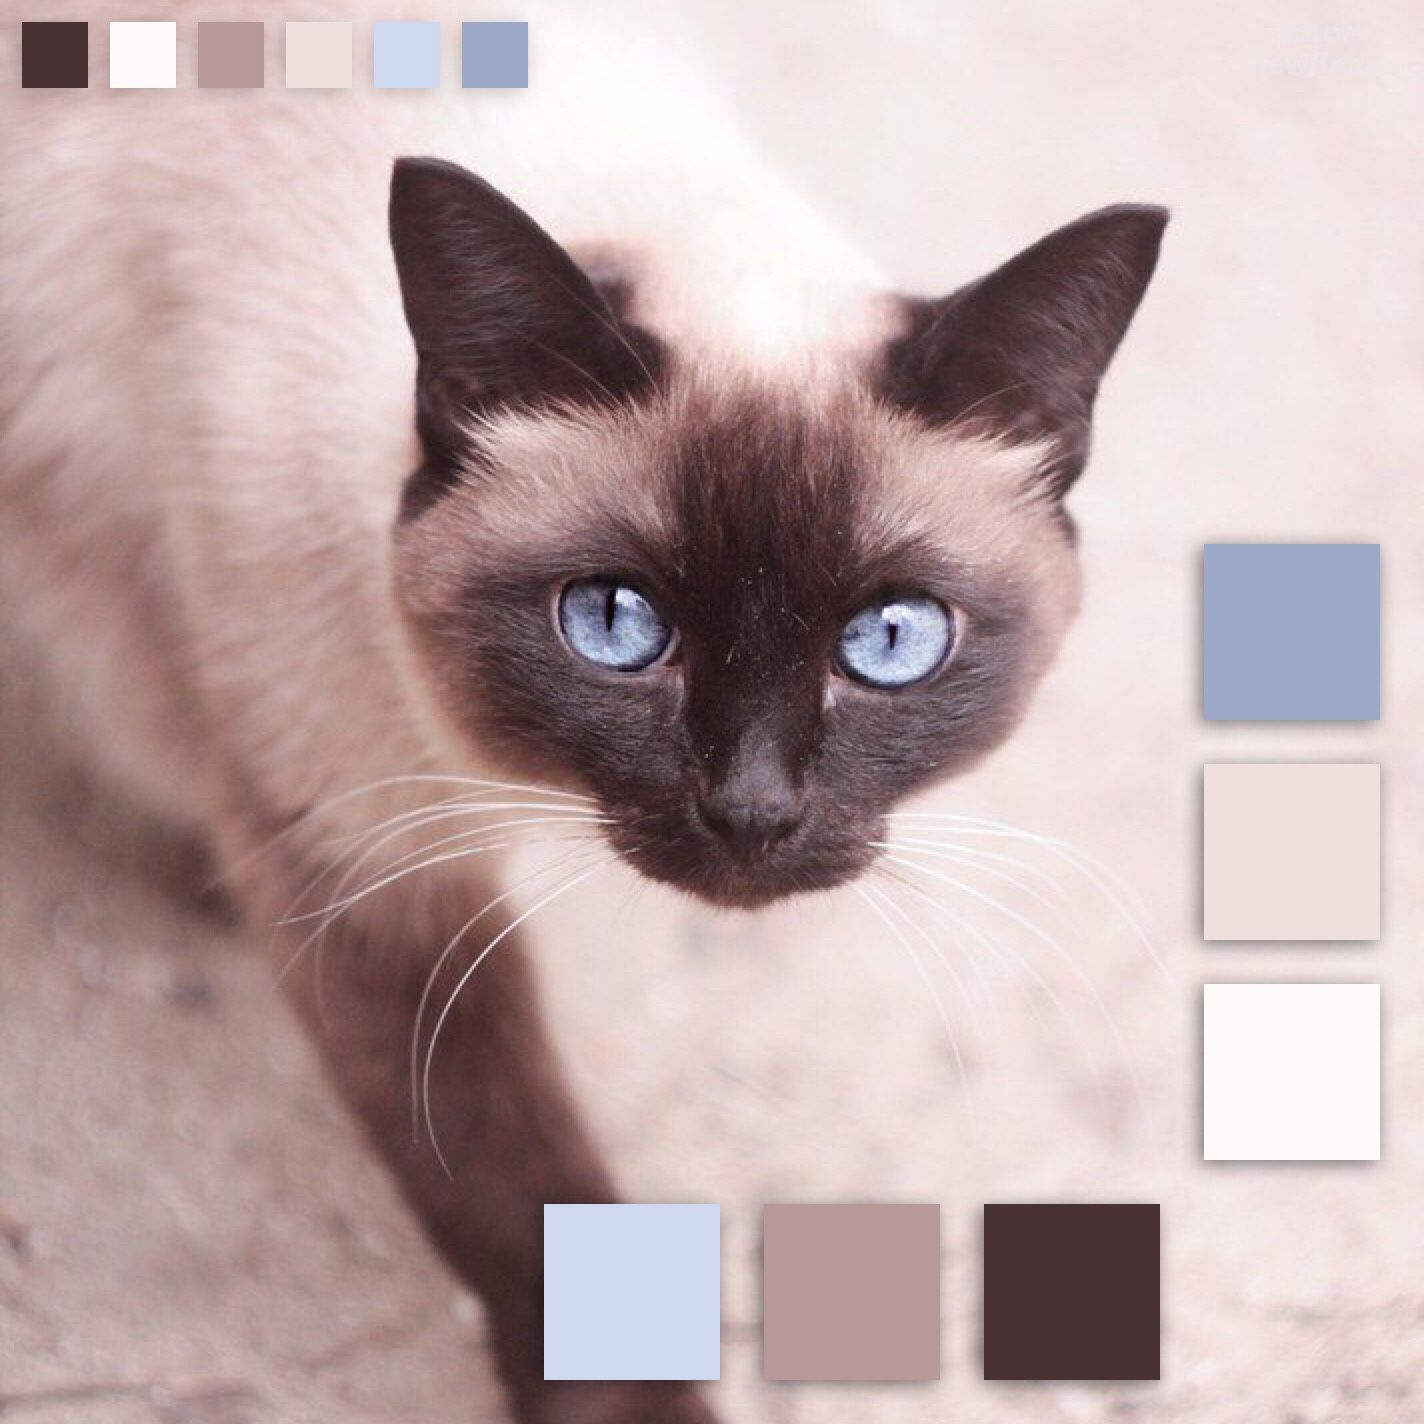 Pin By Brianne Law On C O L O R P A L E T T E S Cat Colors Color Palette Siamese Cats